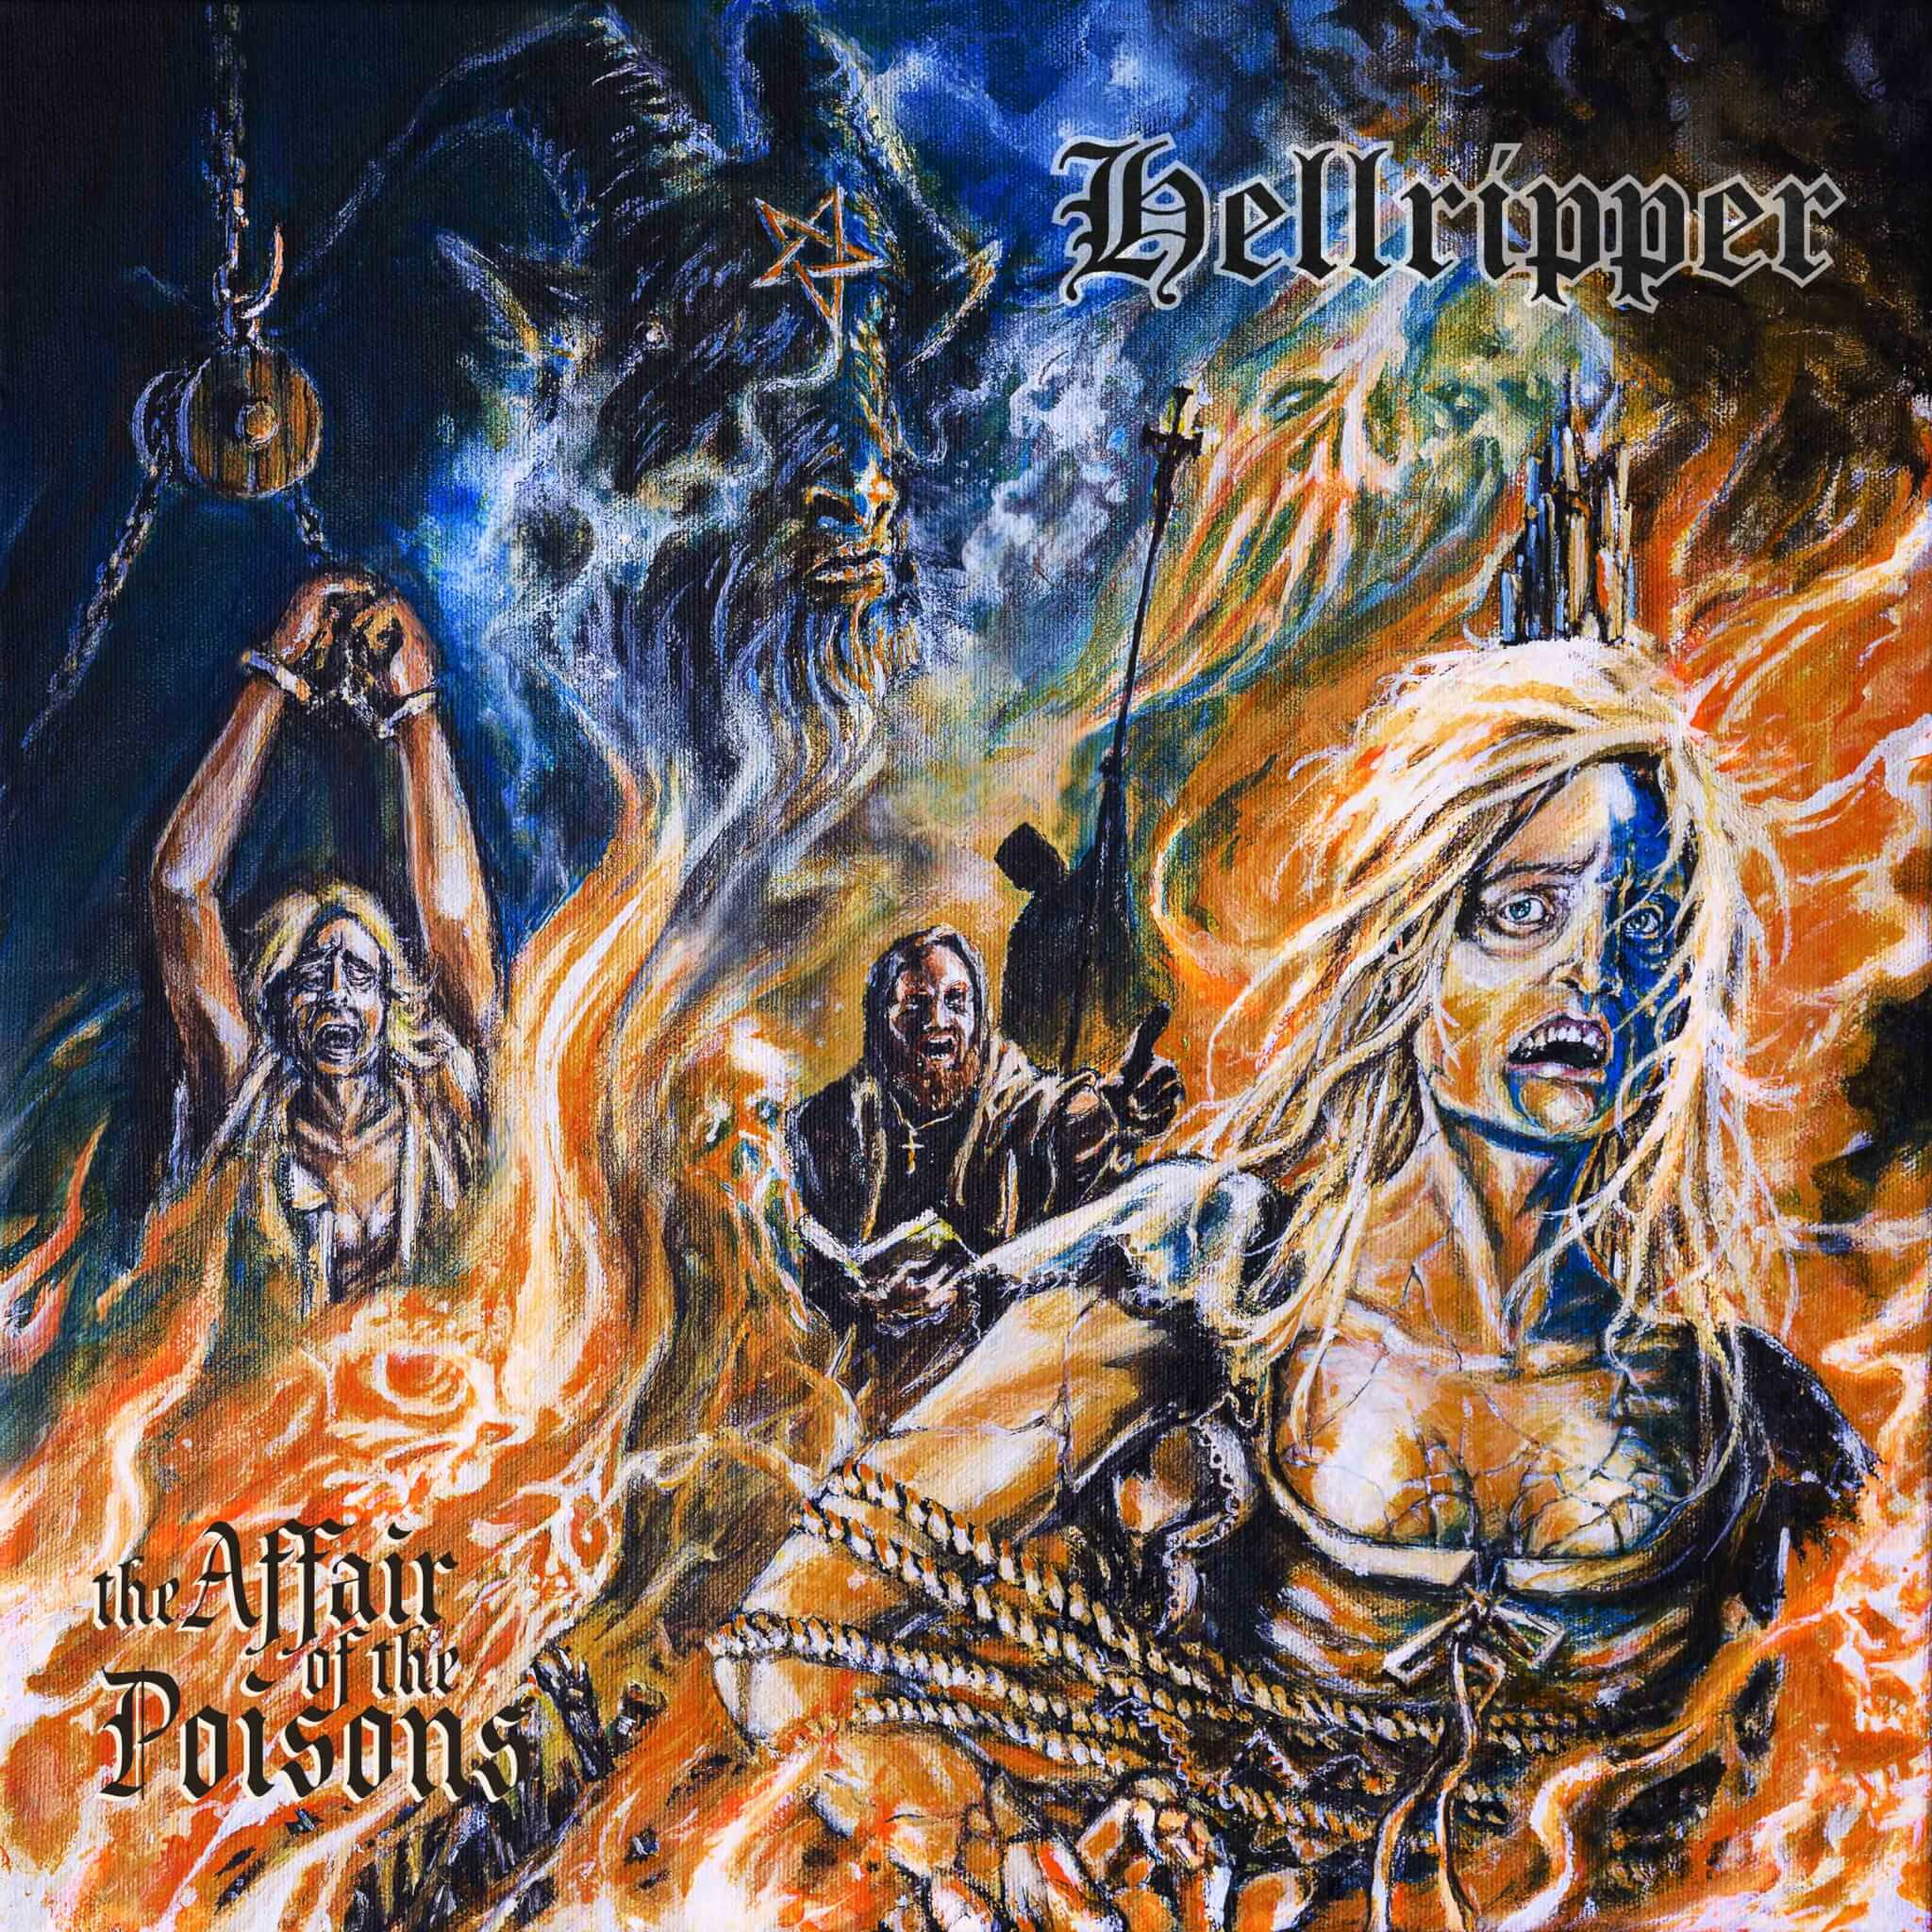 Hellripper release new single 'The Affair Of The Poison' – the title track of new studio album due for release 9th October